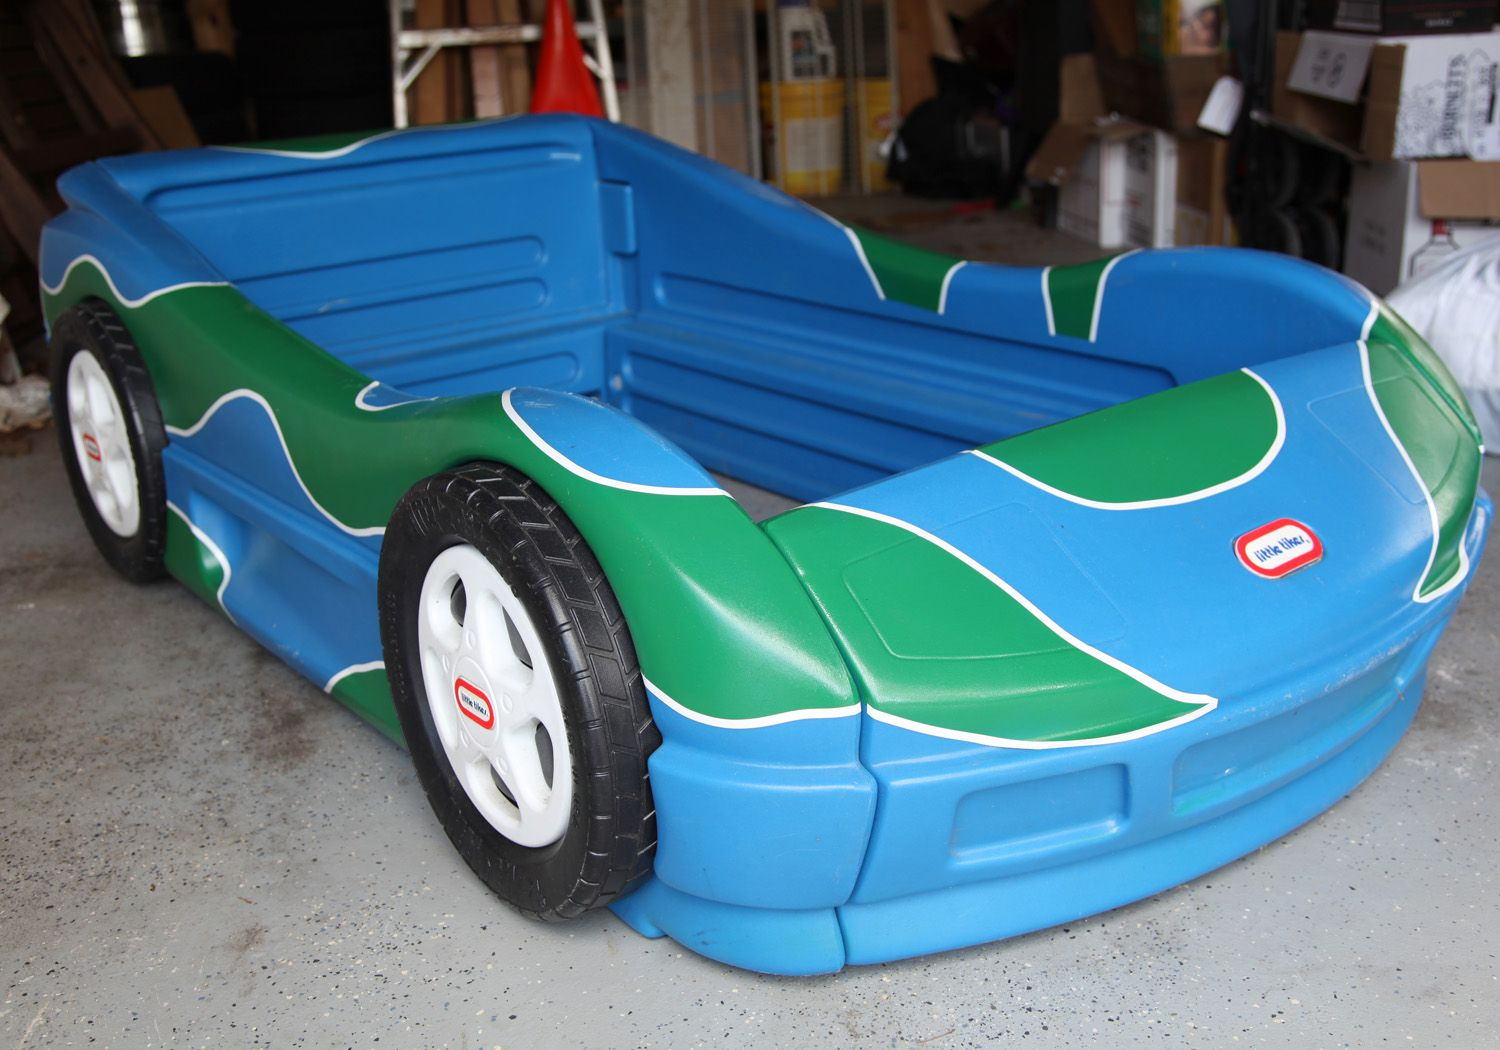 Blue little tikes car bed with added paint and decal